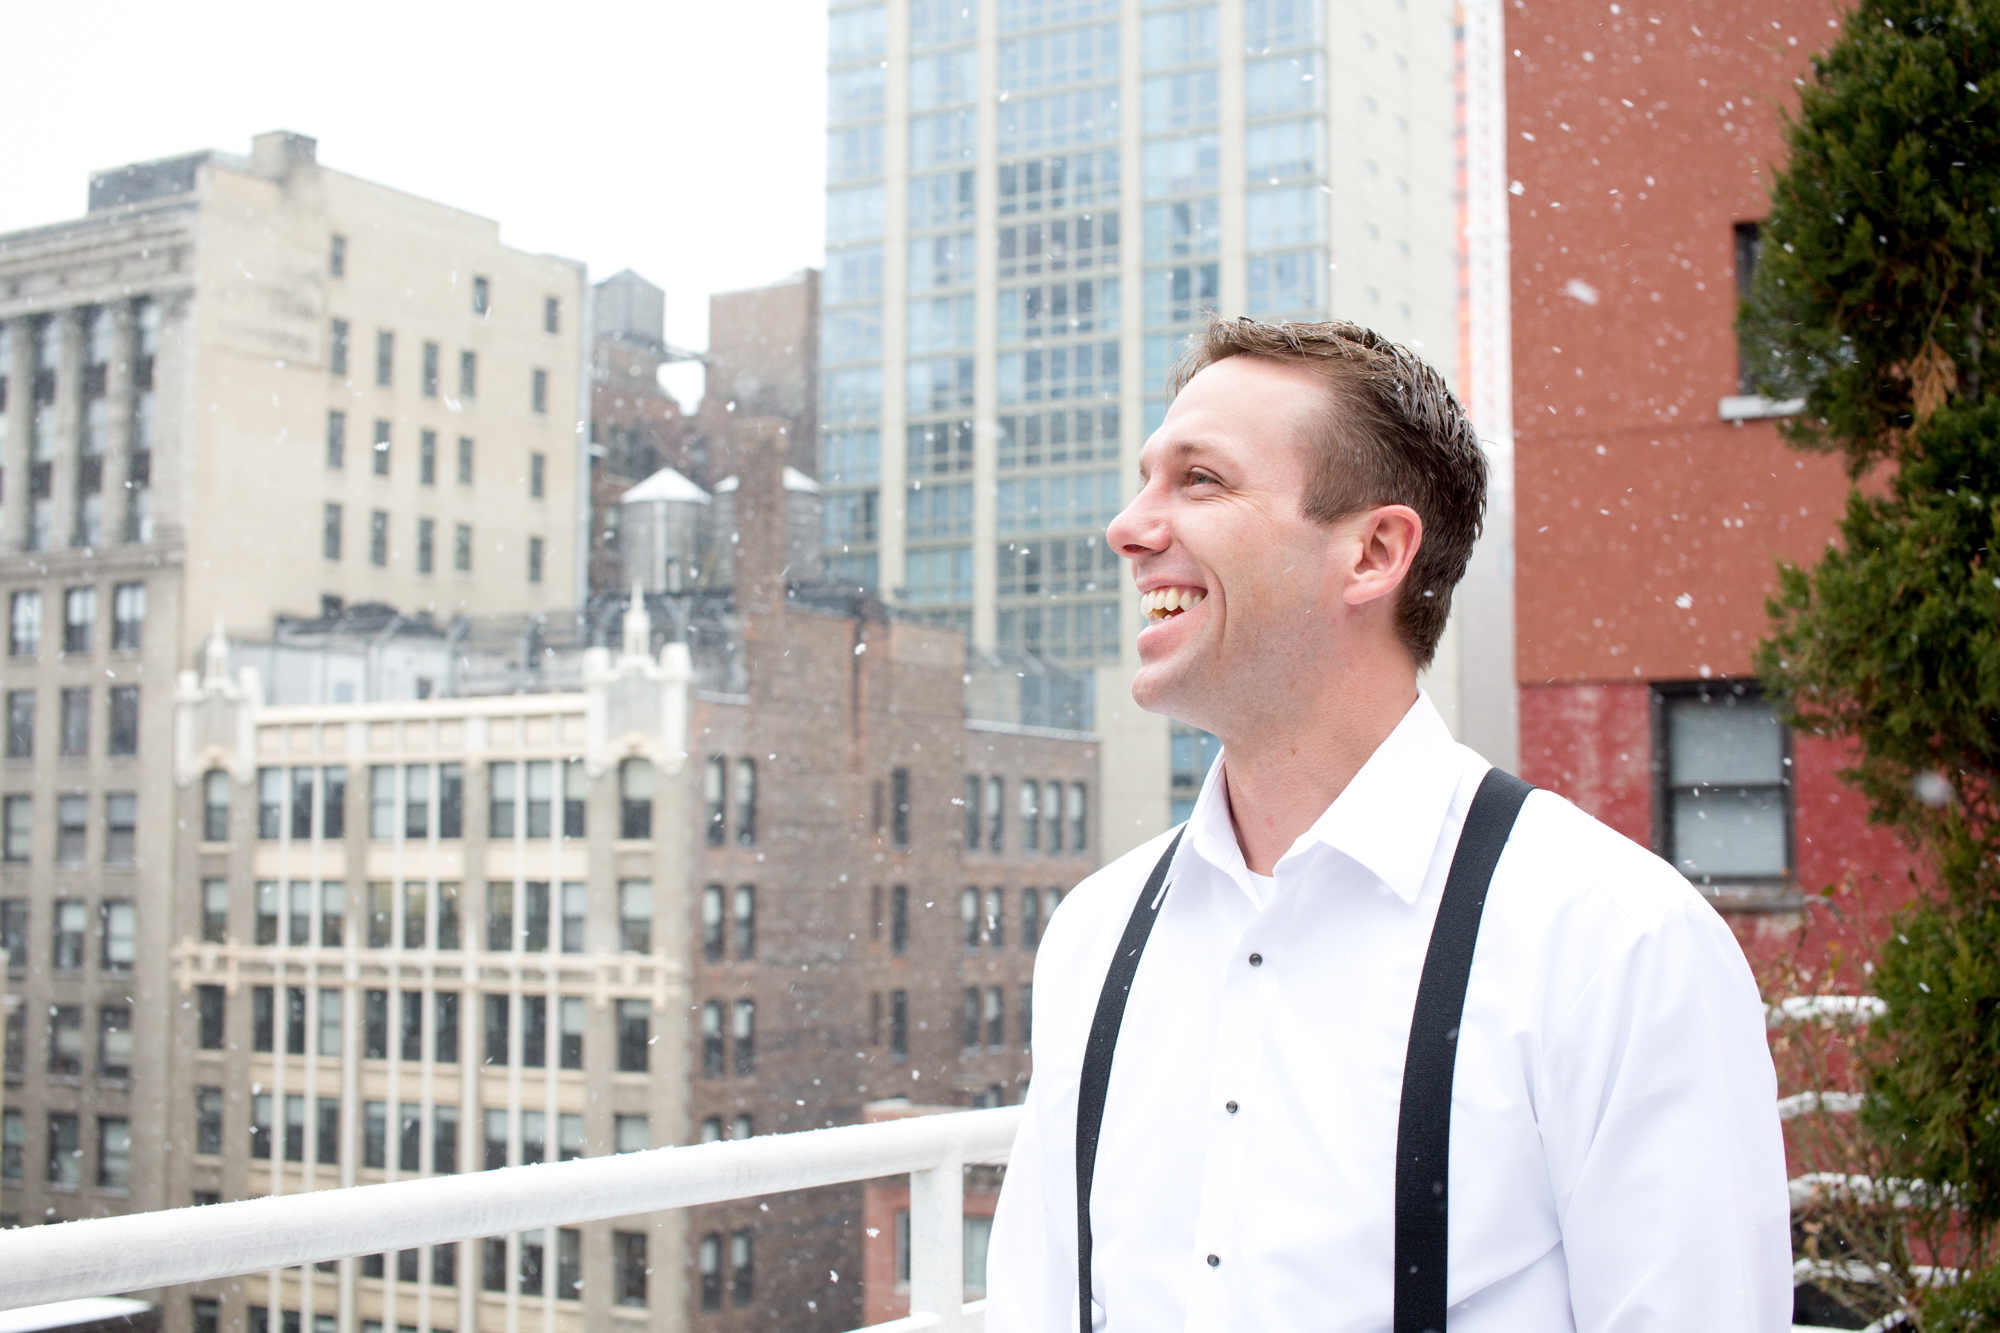 074_CarlyGaebe_SteadfastStudio_WeddingPhotography_NewYorkCity_Winter_Romantic_Snowing_Groom.jpg